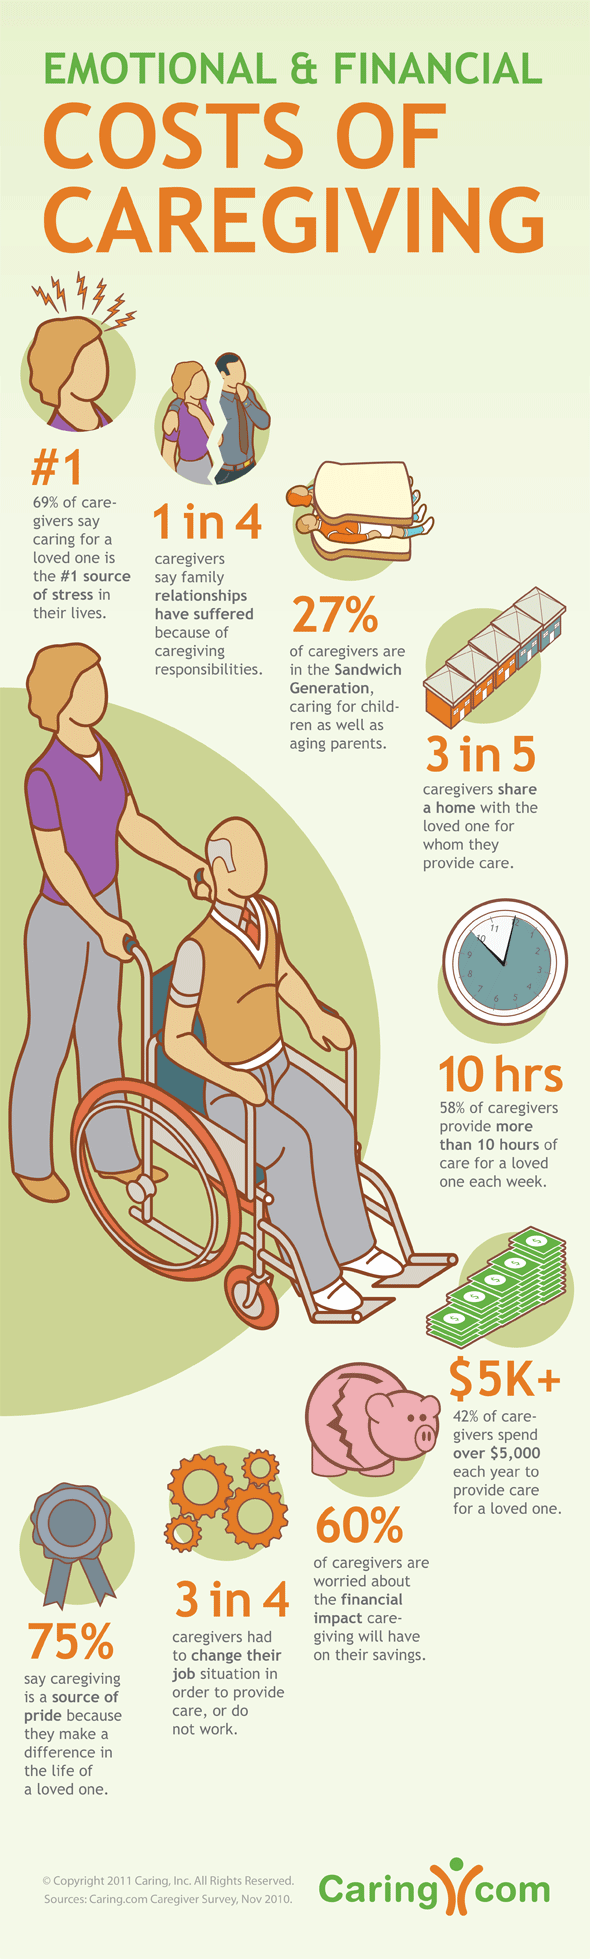 Emotional and Financial Cost of Caregiving Infographic by Caring.com